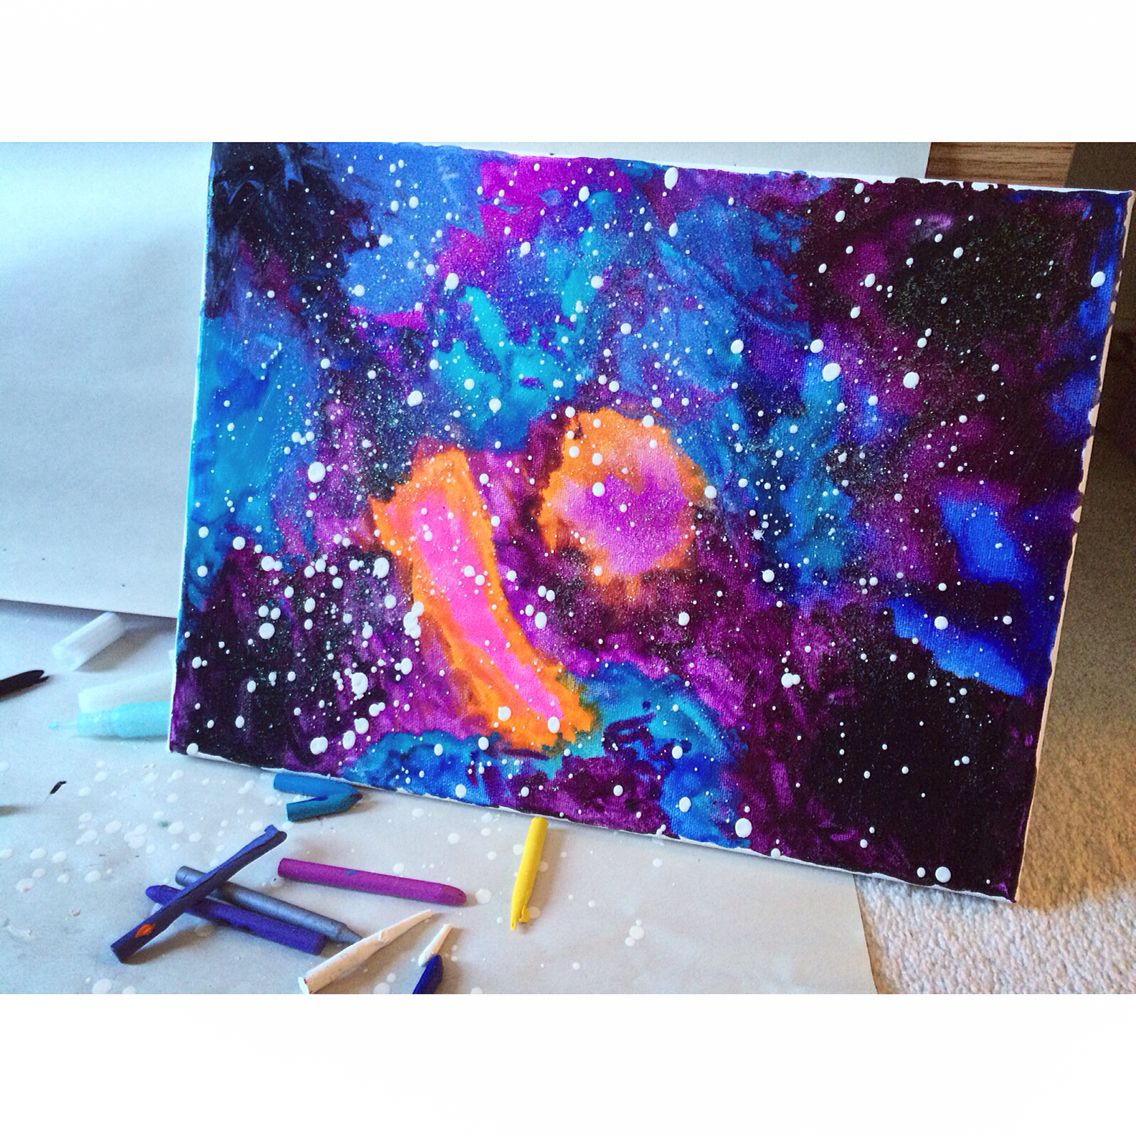 Galaxy Crayon Art Crayon Art Melted Crayon Art Melting Crayons